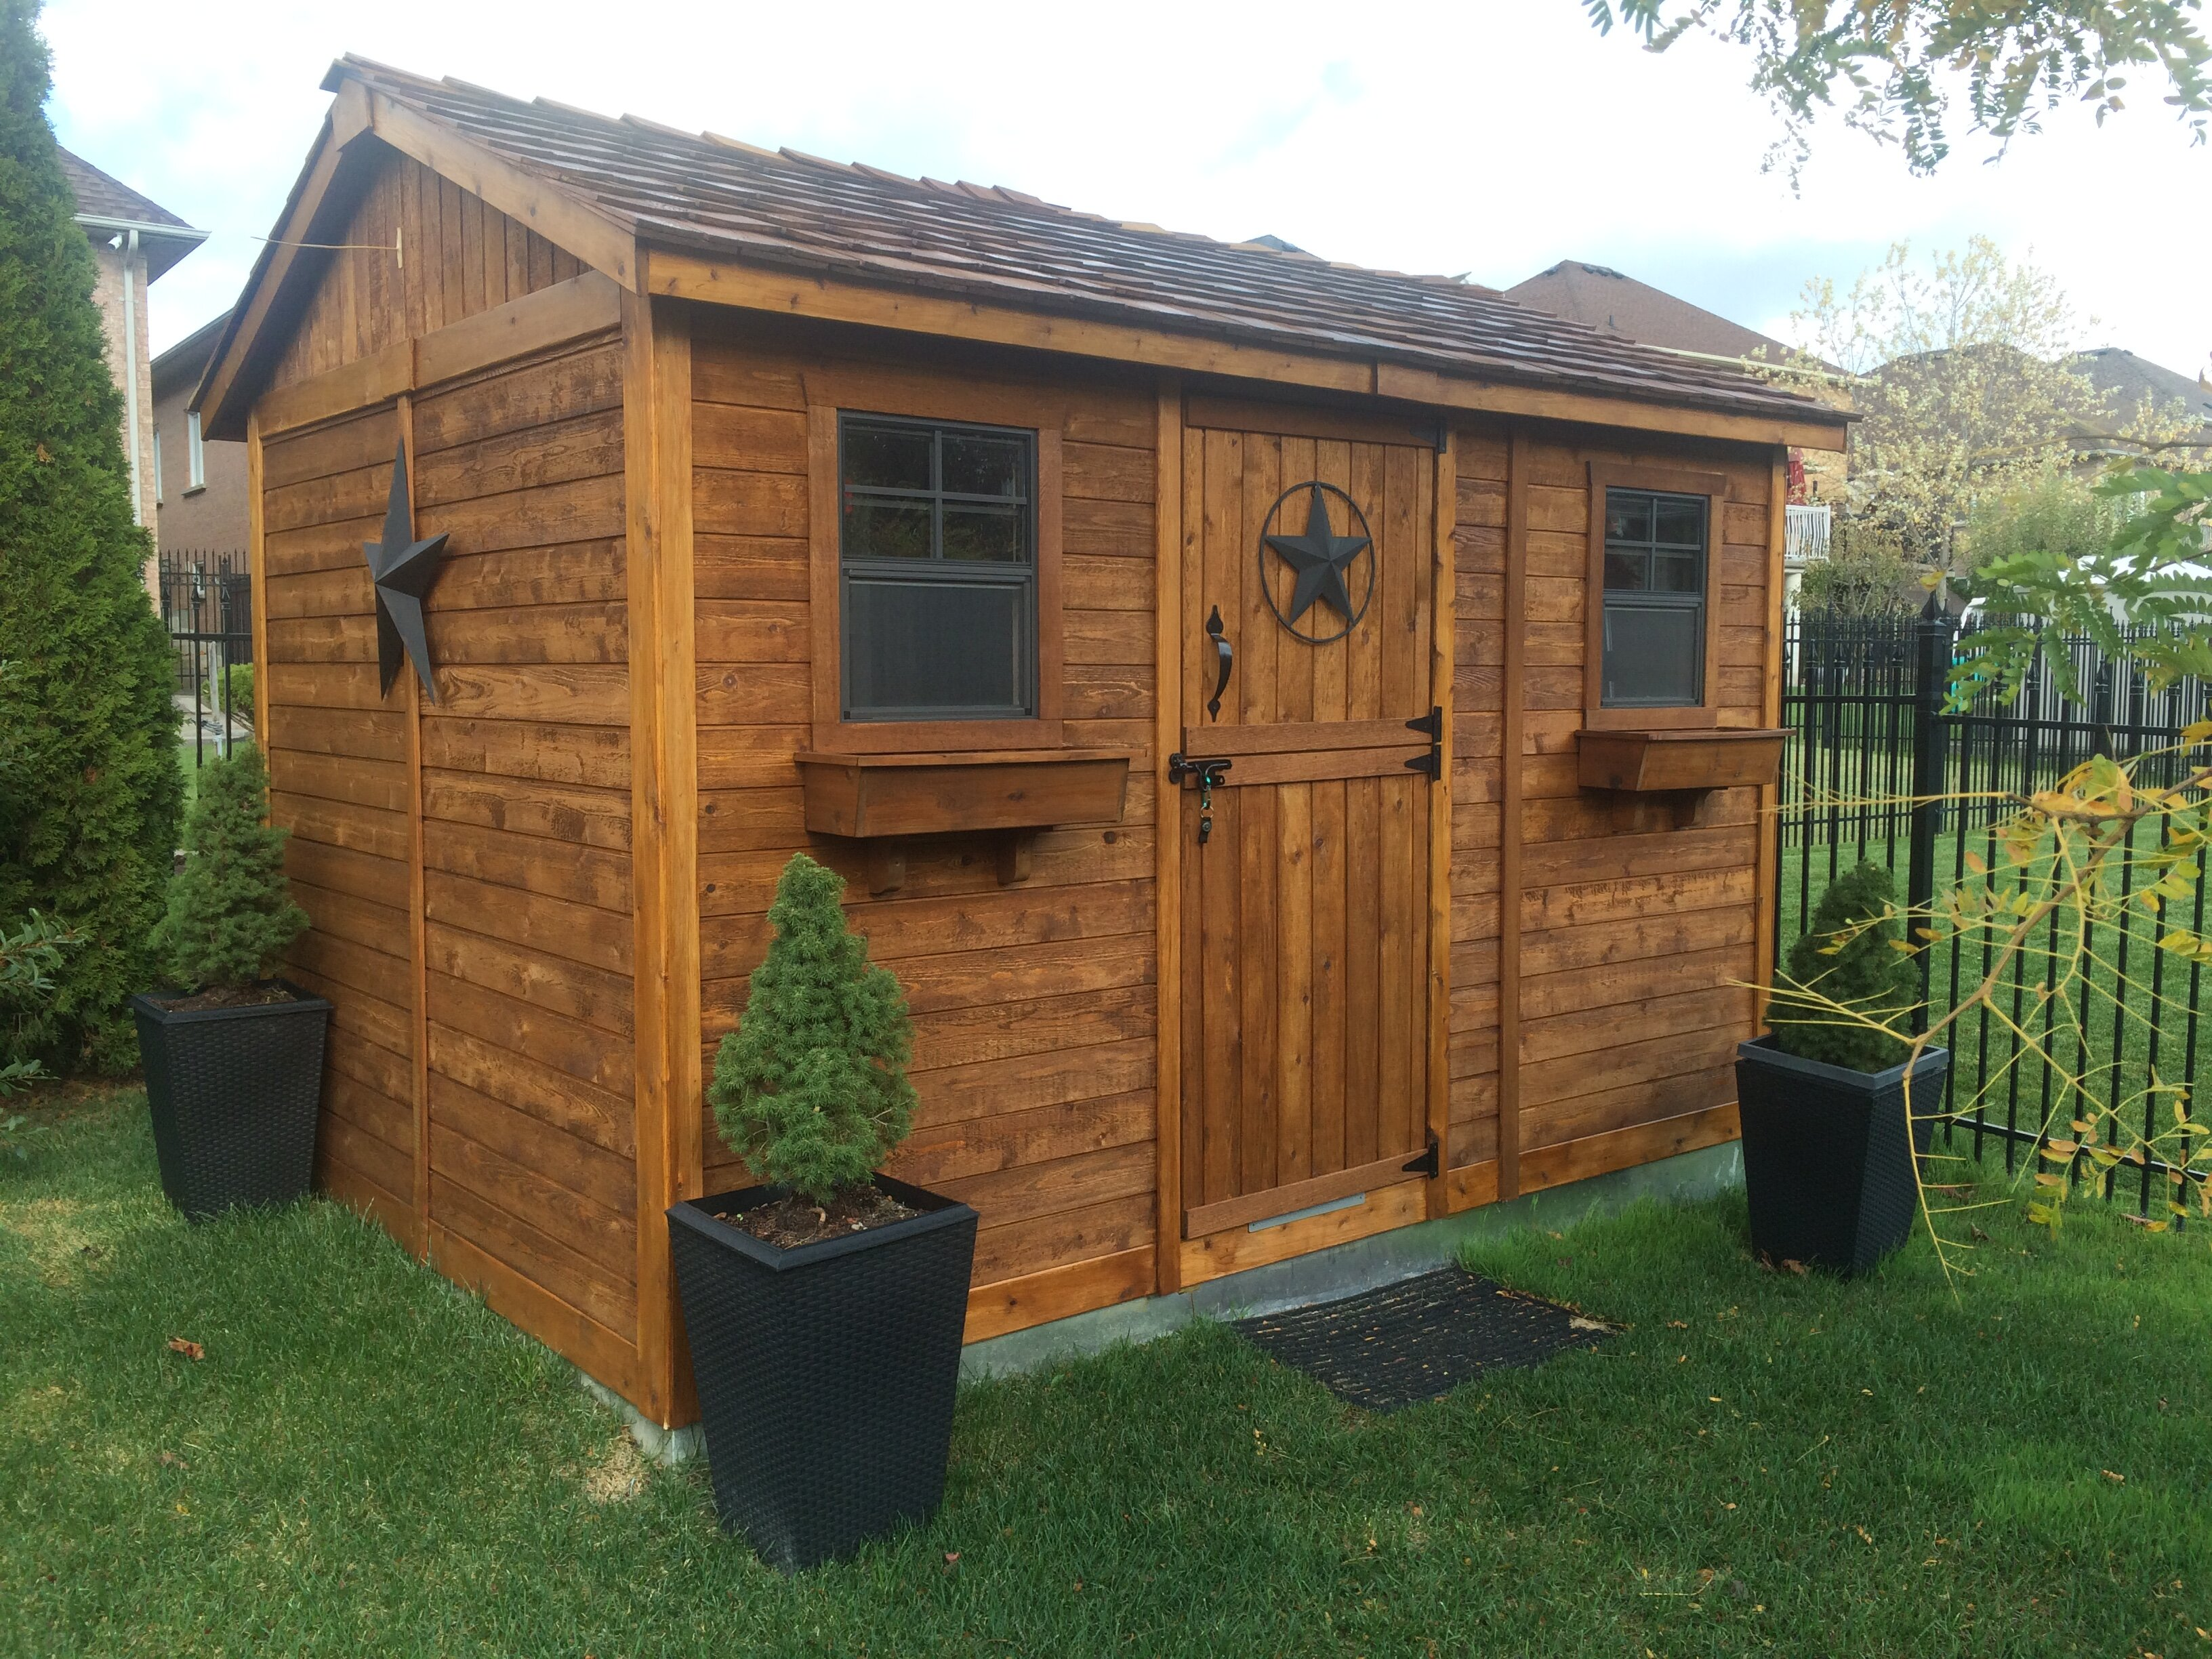 Cabana 9 ft. W x 9 ft. D Wood Storage Shed